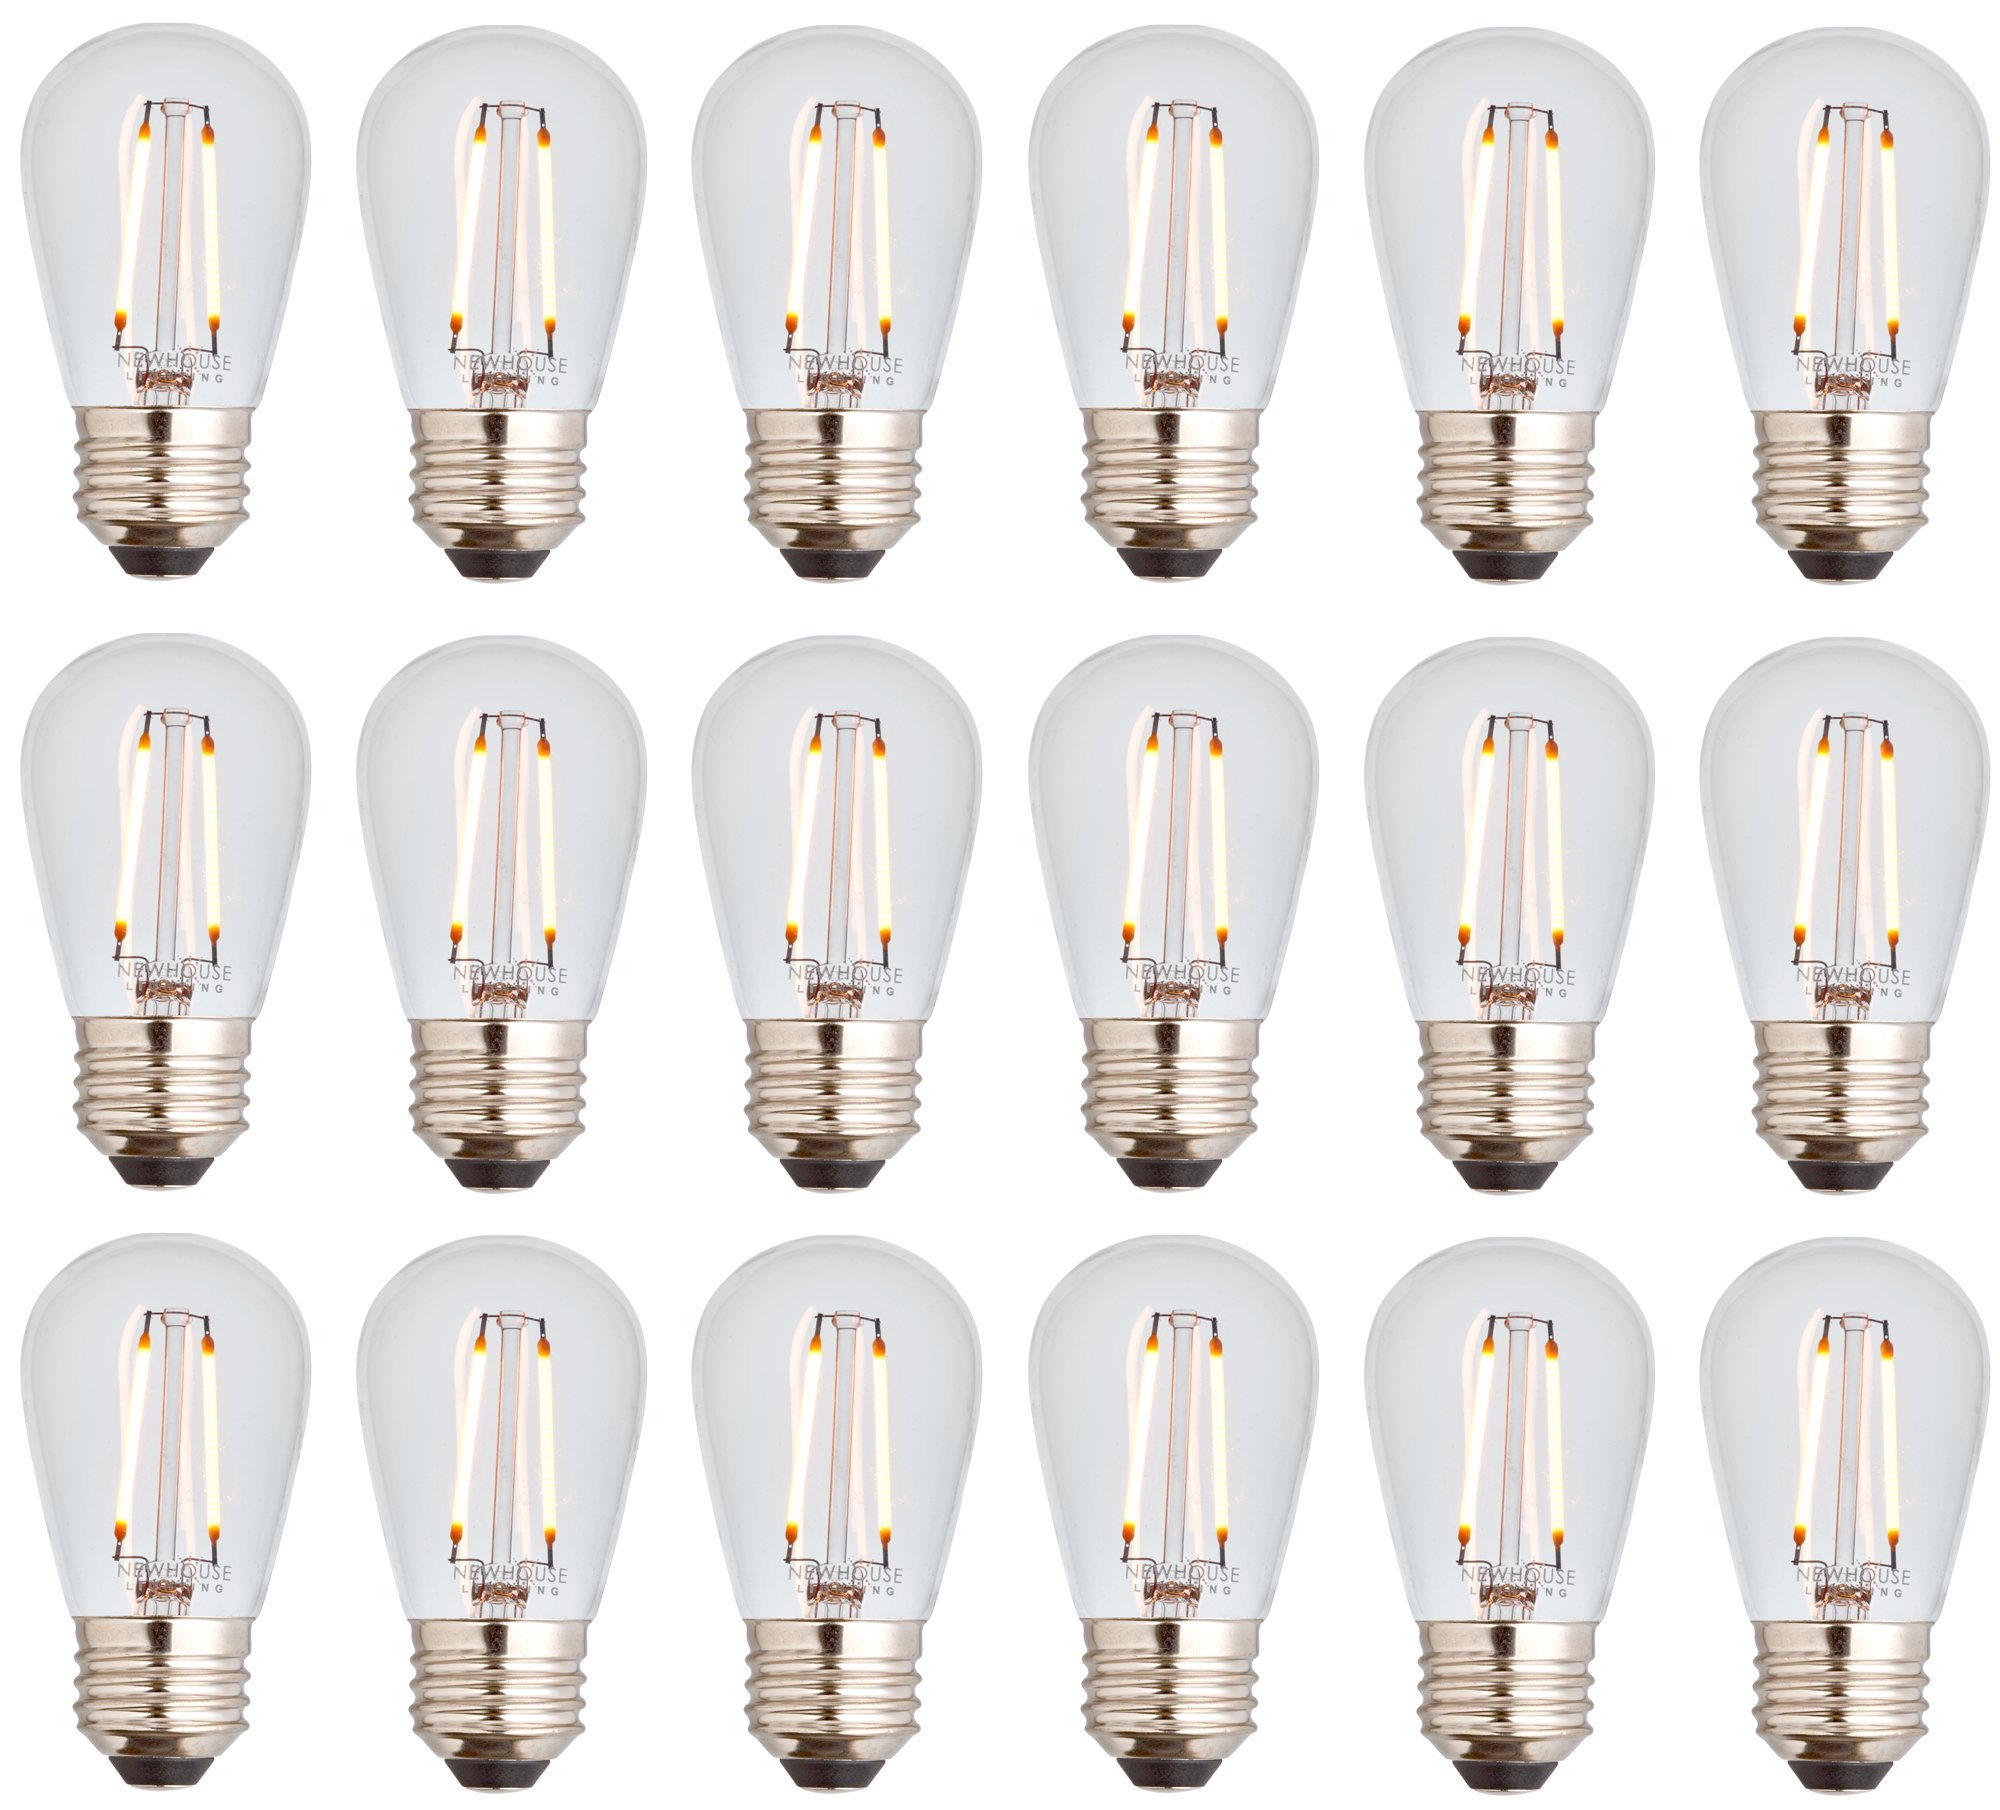 Newhouse Lighting Outdoor Weatherproof 2W S14 LED Filament Replacement String Light Bulbs | Standard Base | 18-Pack